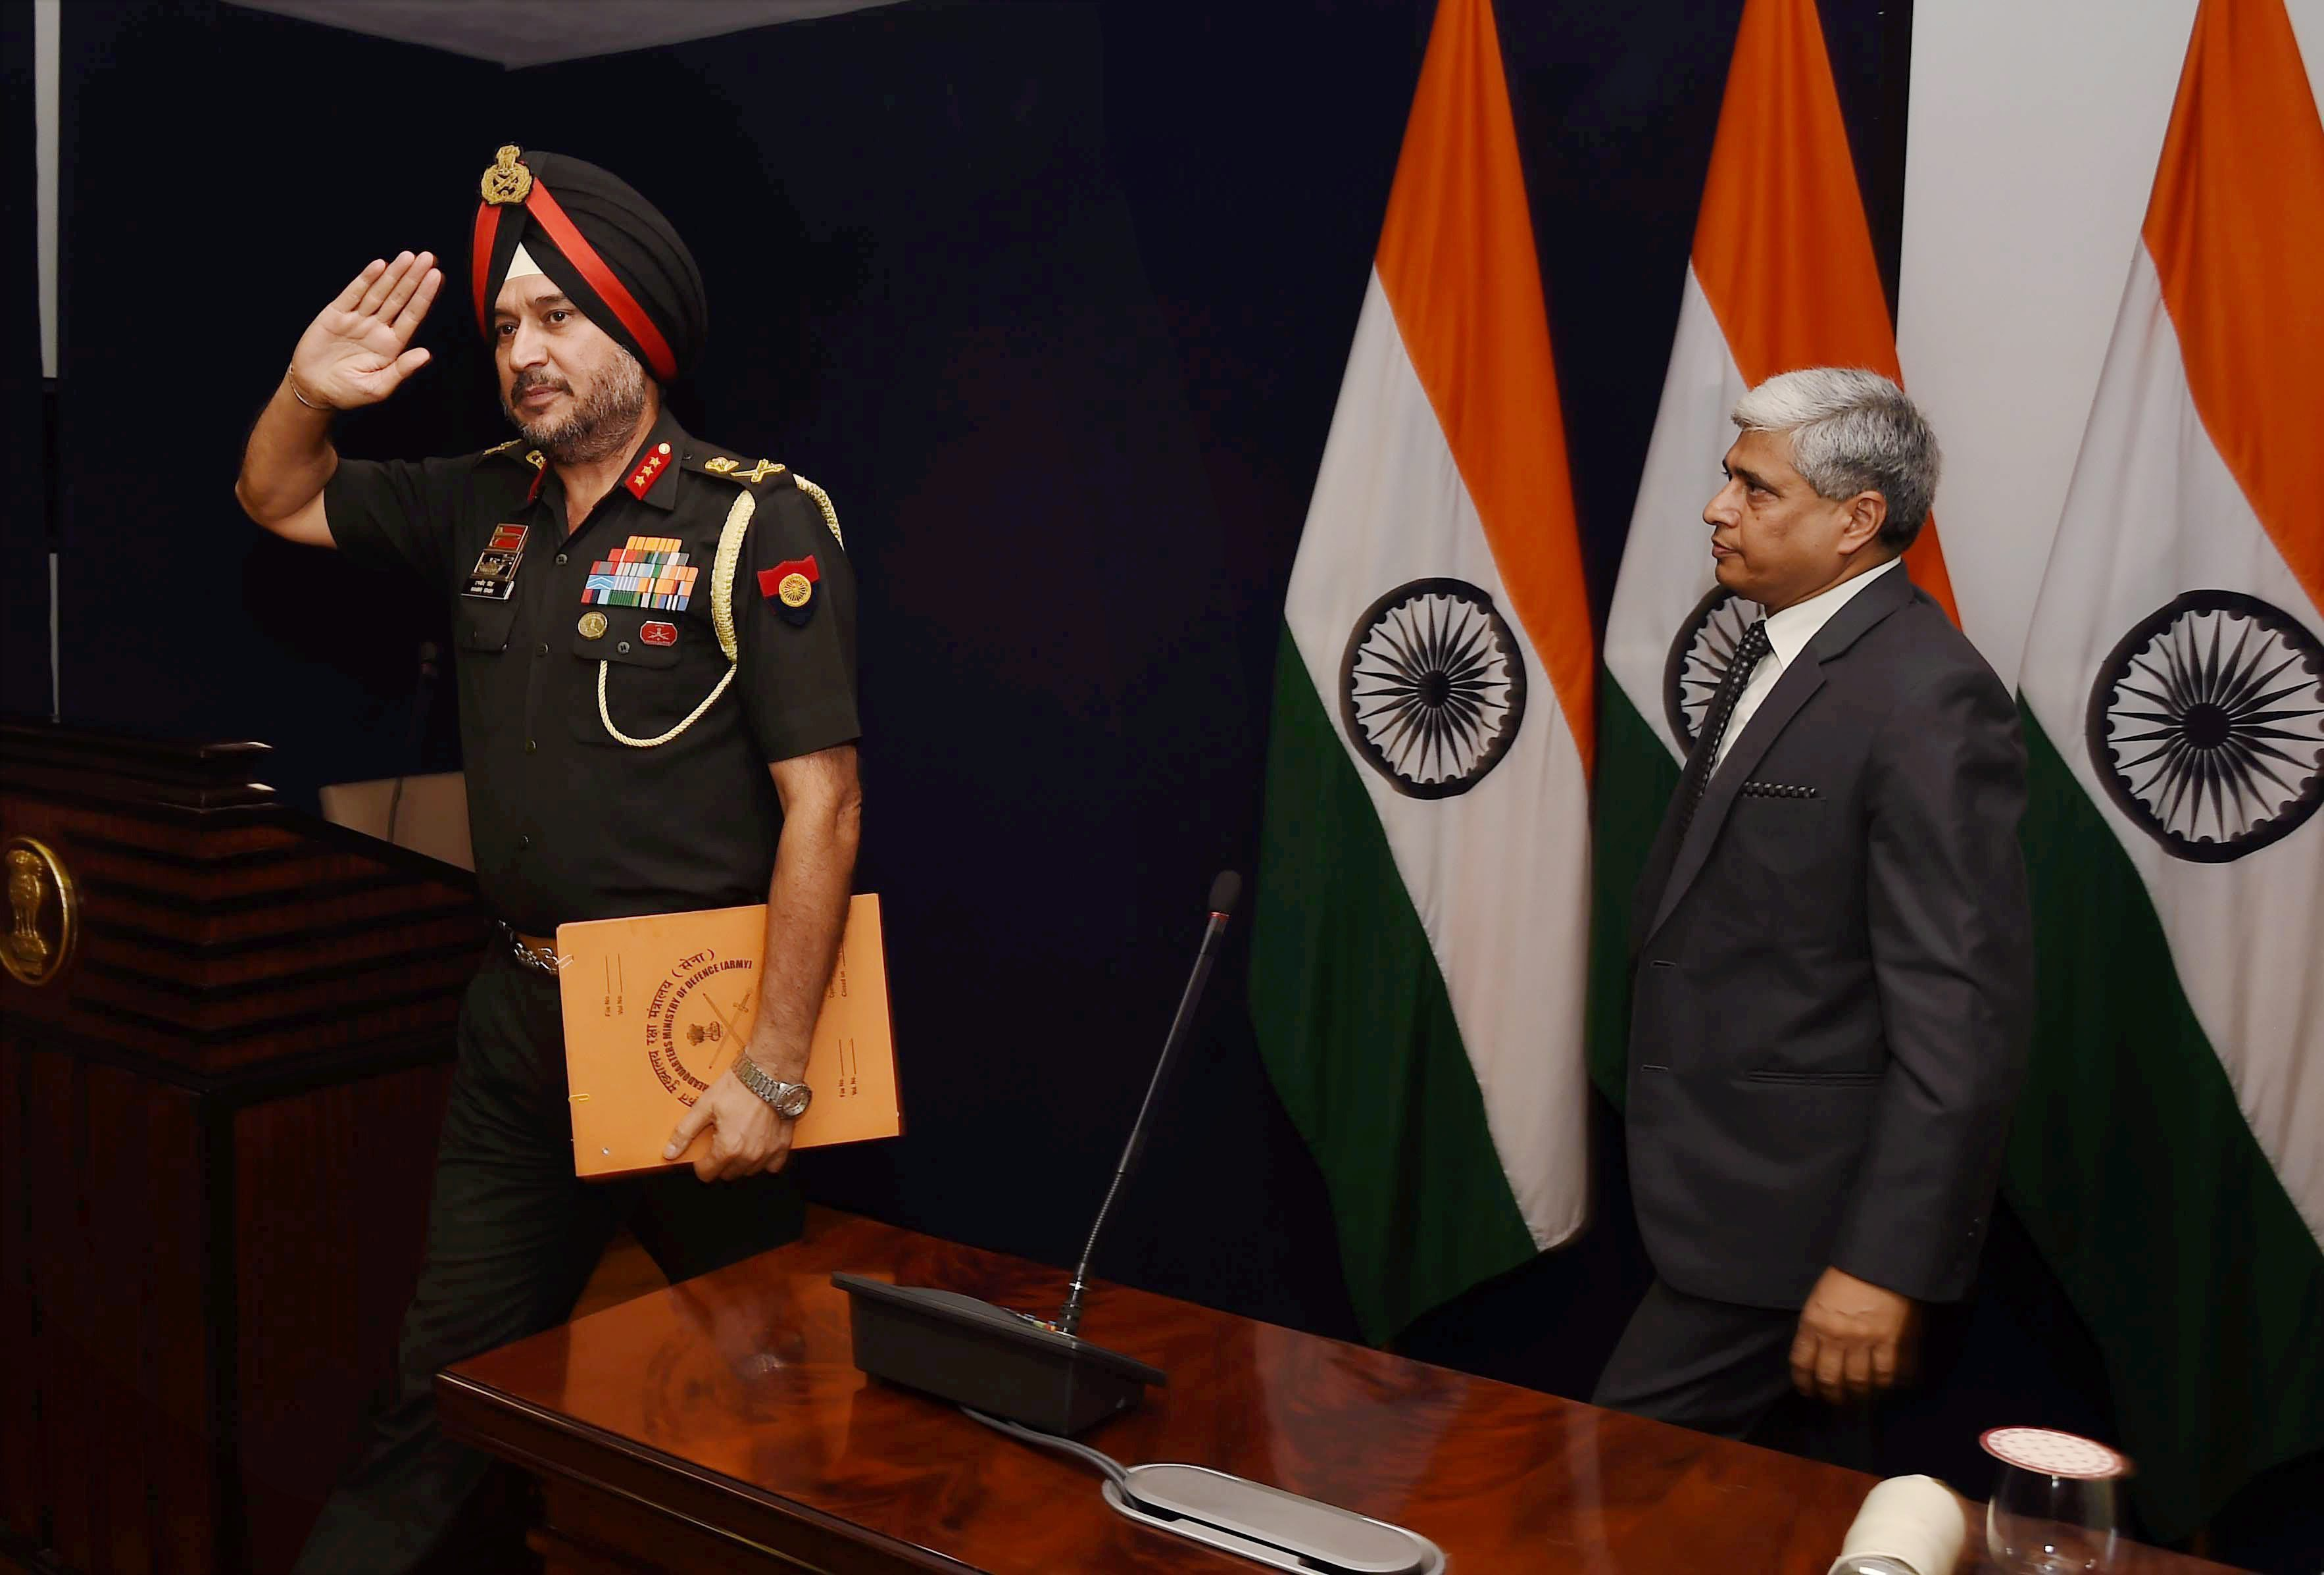 Director General Military Operations (DGMO), Ranbir Singh and external affairs ministry spokesperson Vikas Swarup address a press conference, in New Delhi on Thursday. Credit: PTI